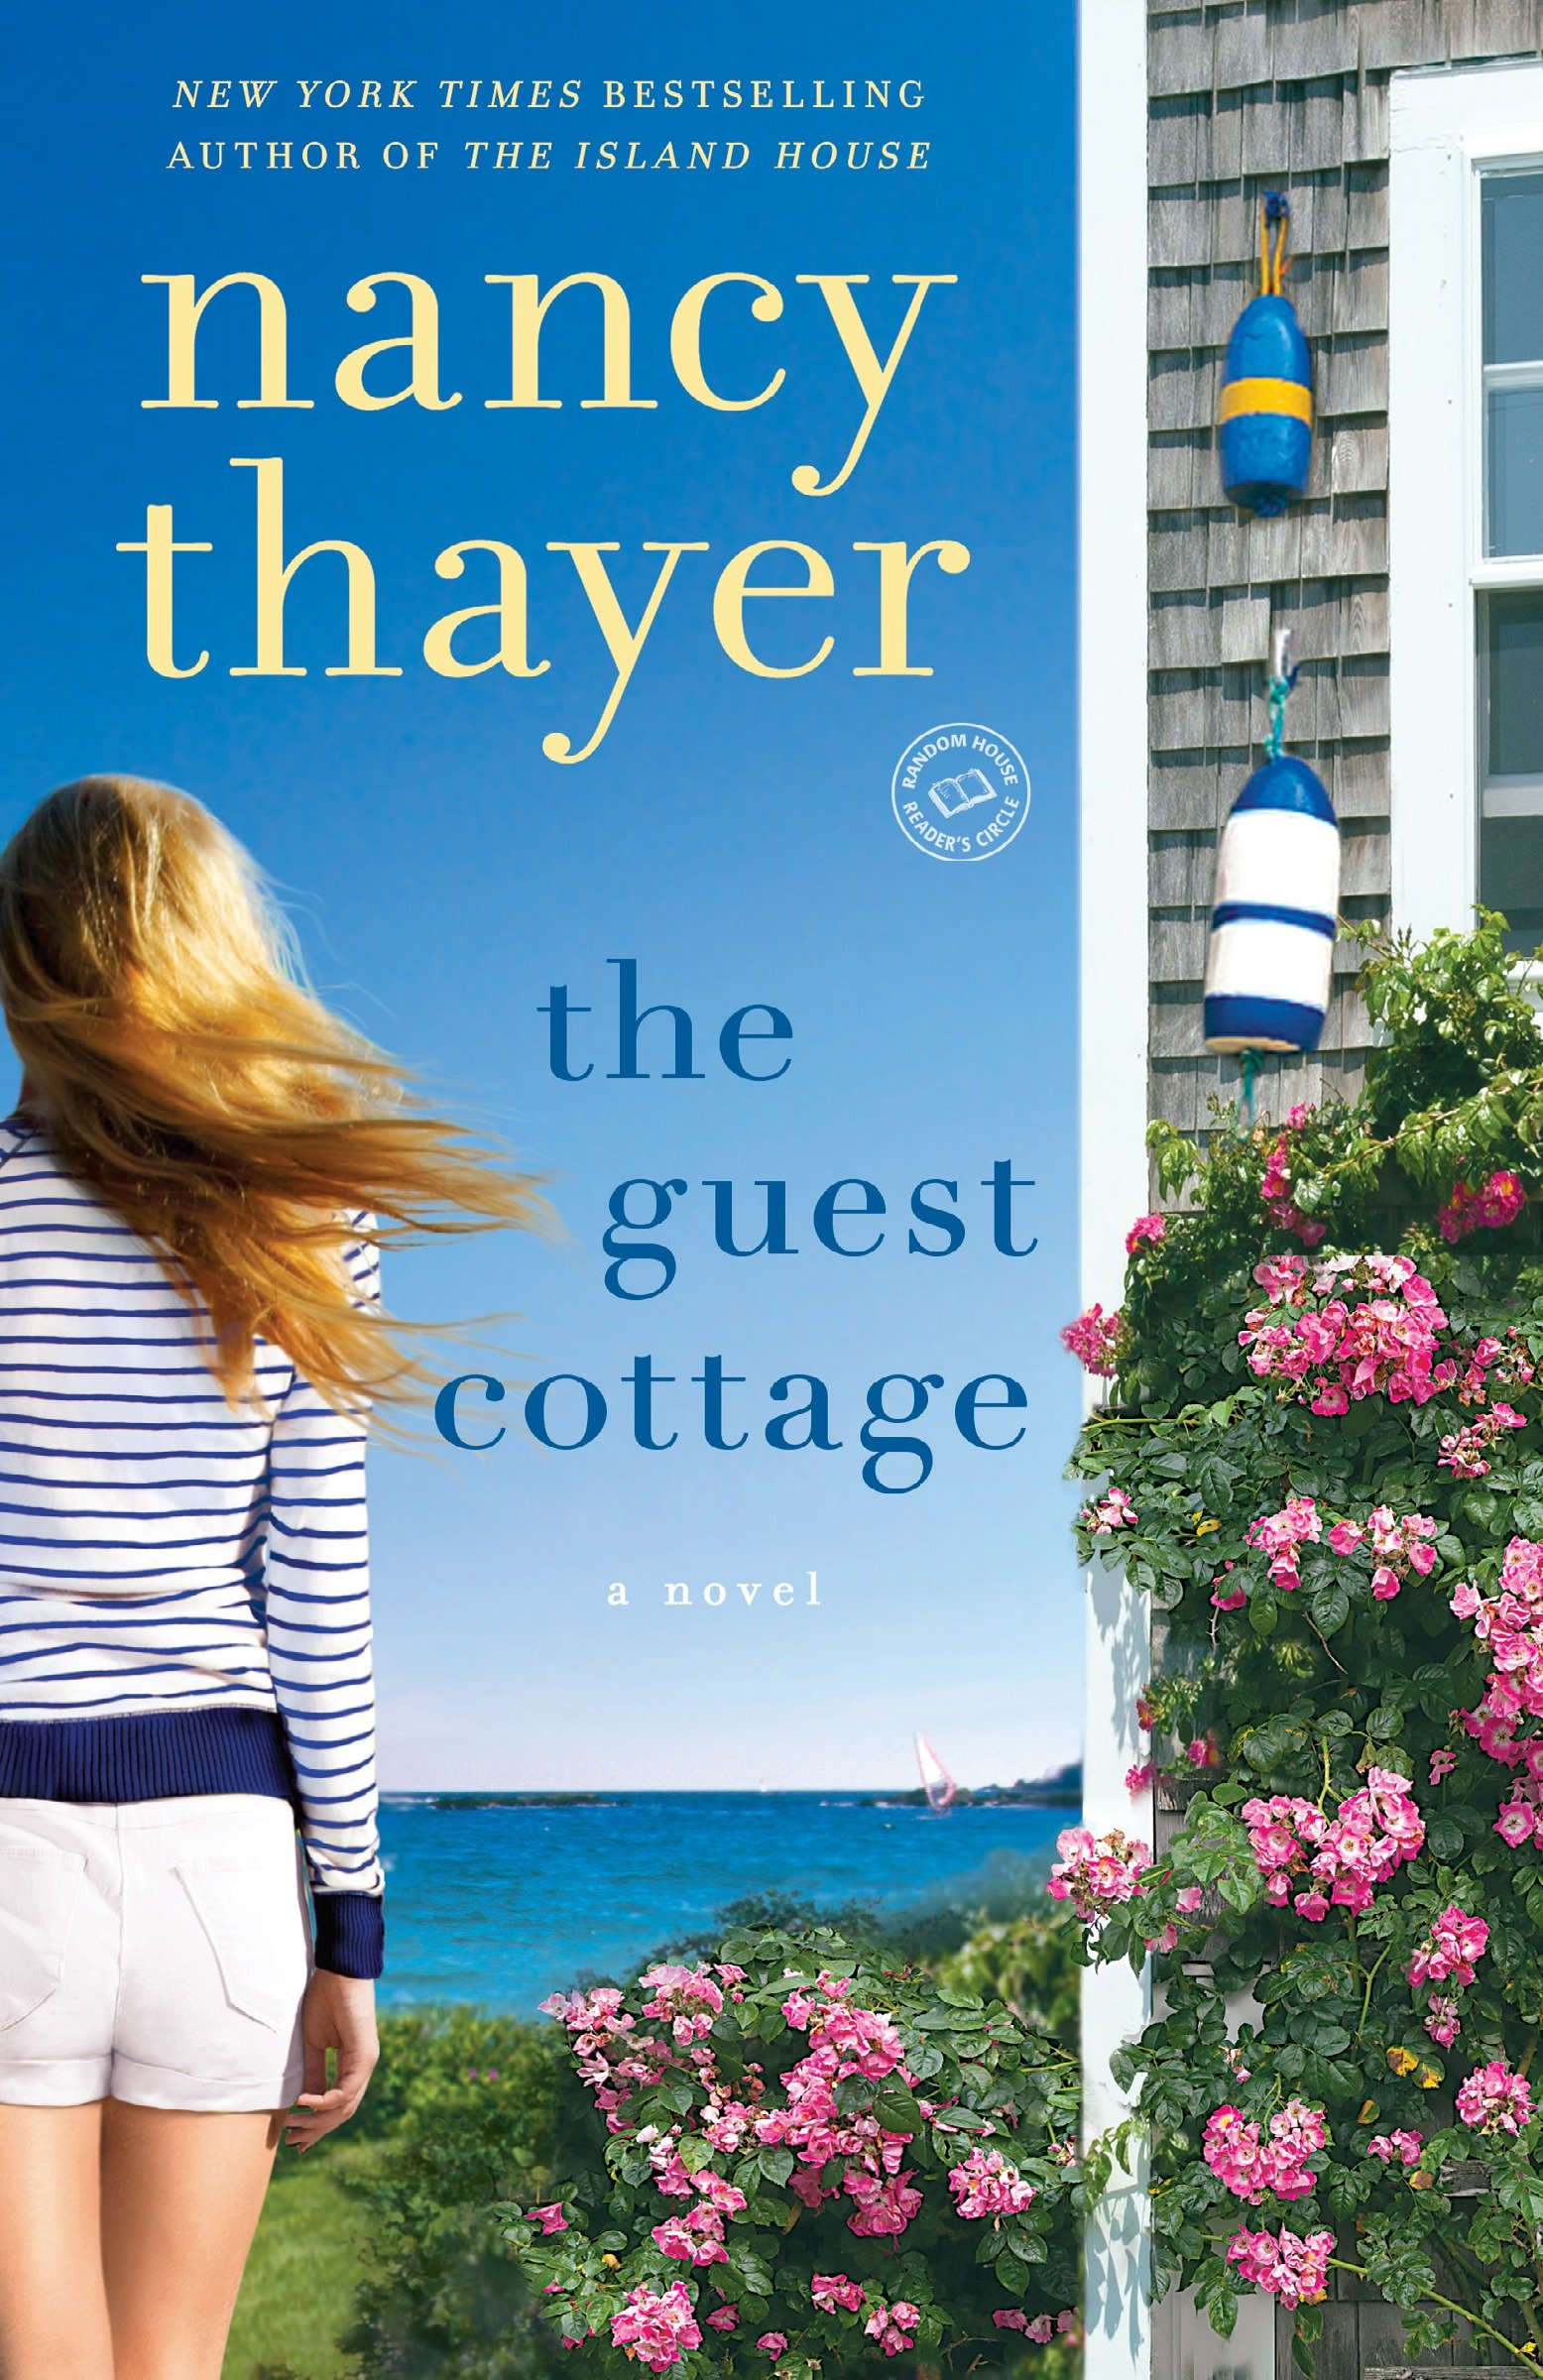 The guest cottage cover image